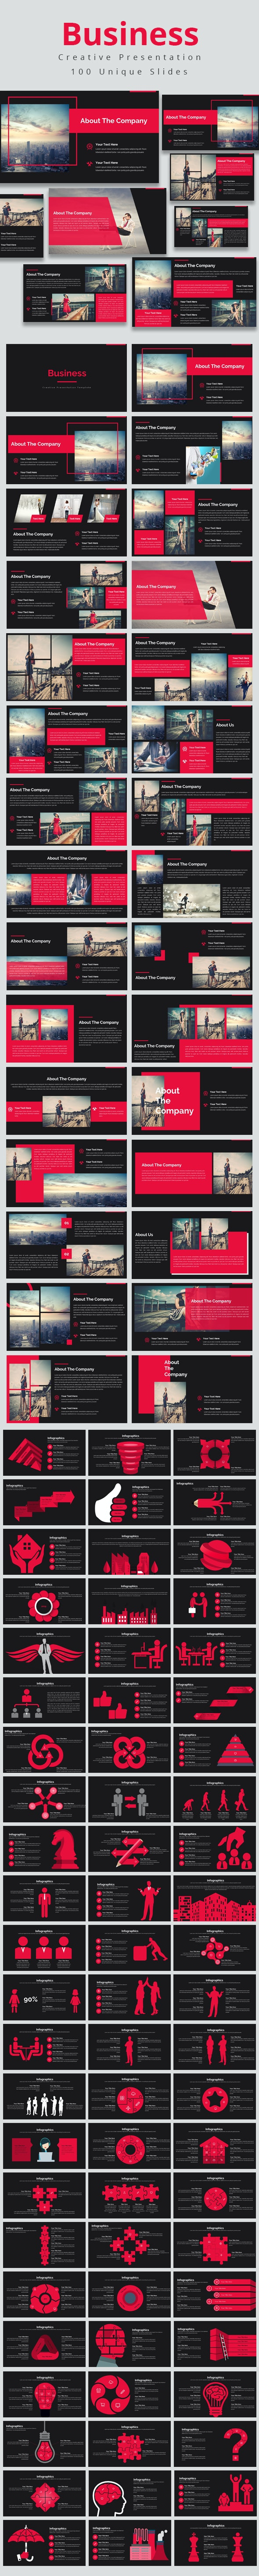 Business Multi-purpose Google Slides Presentation Template - Google Slides Presentation Templates